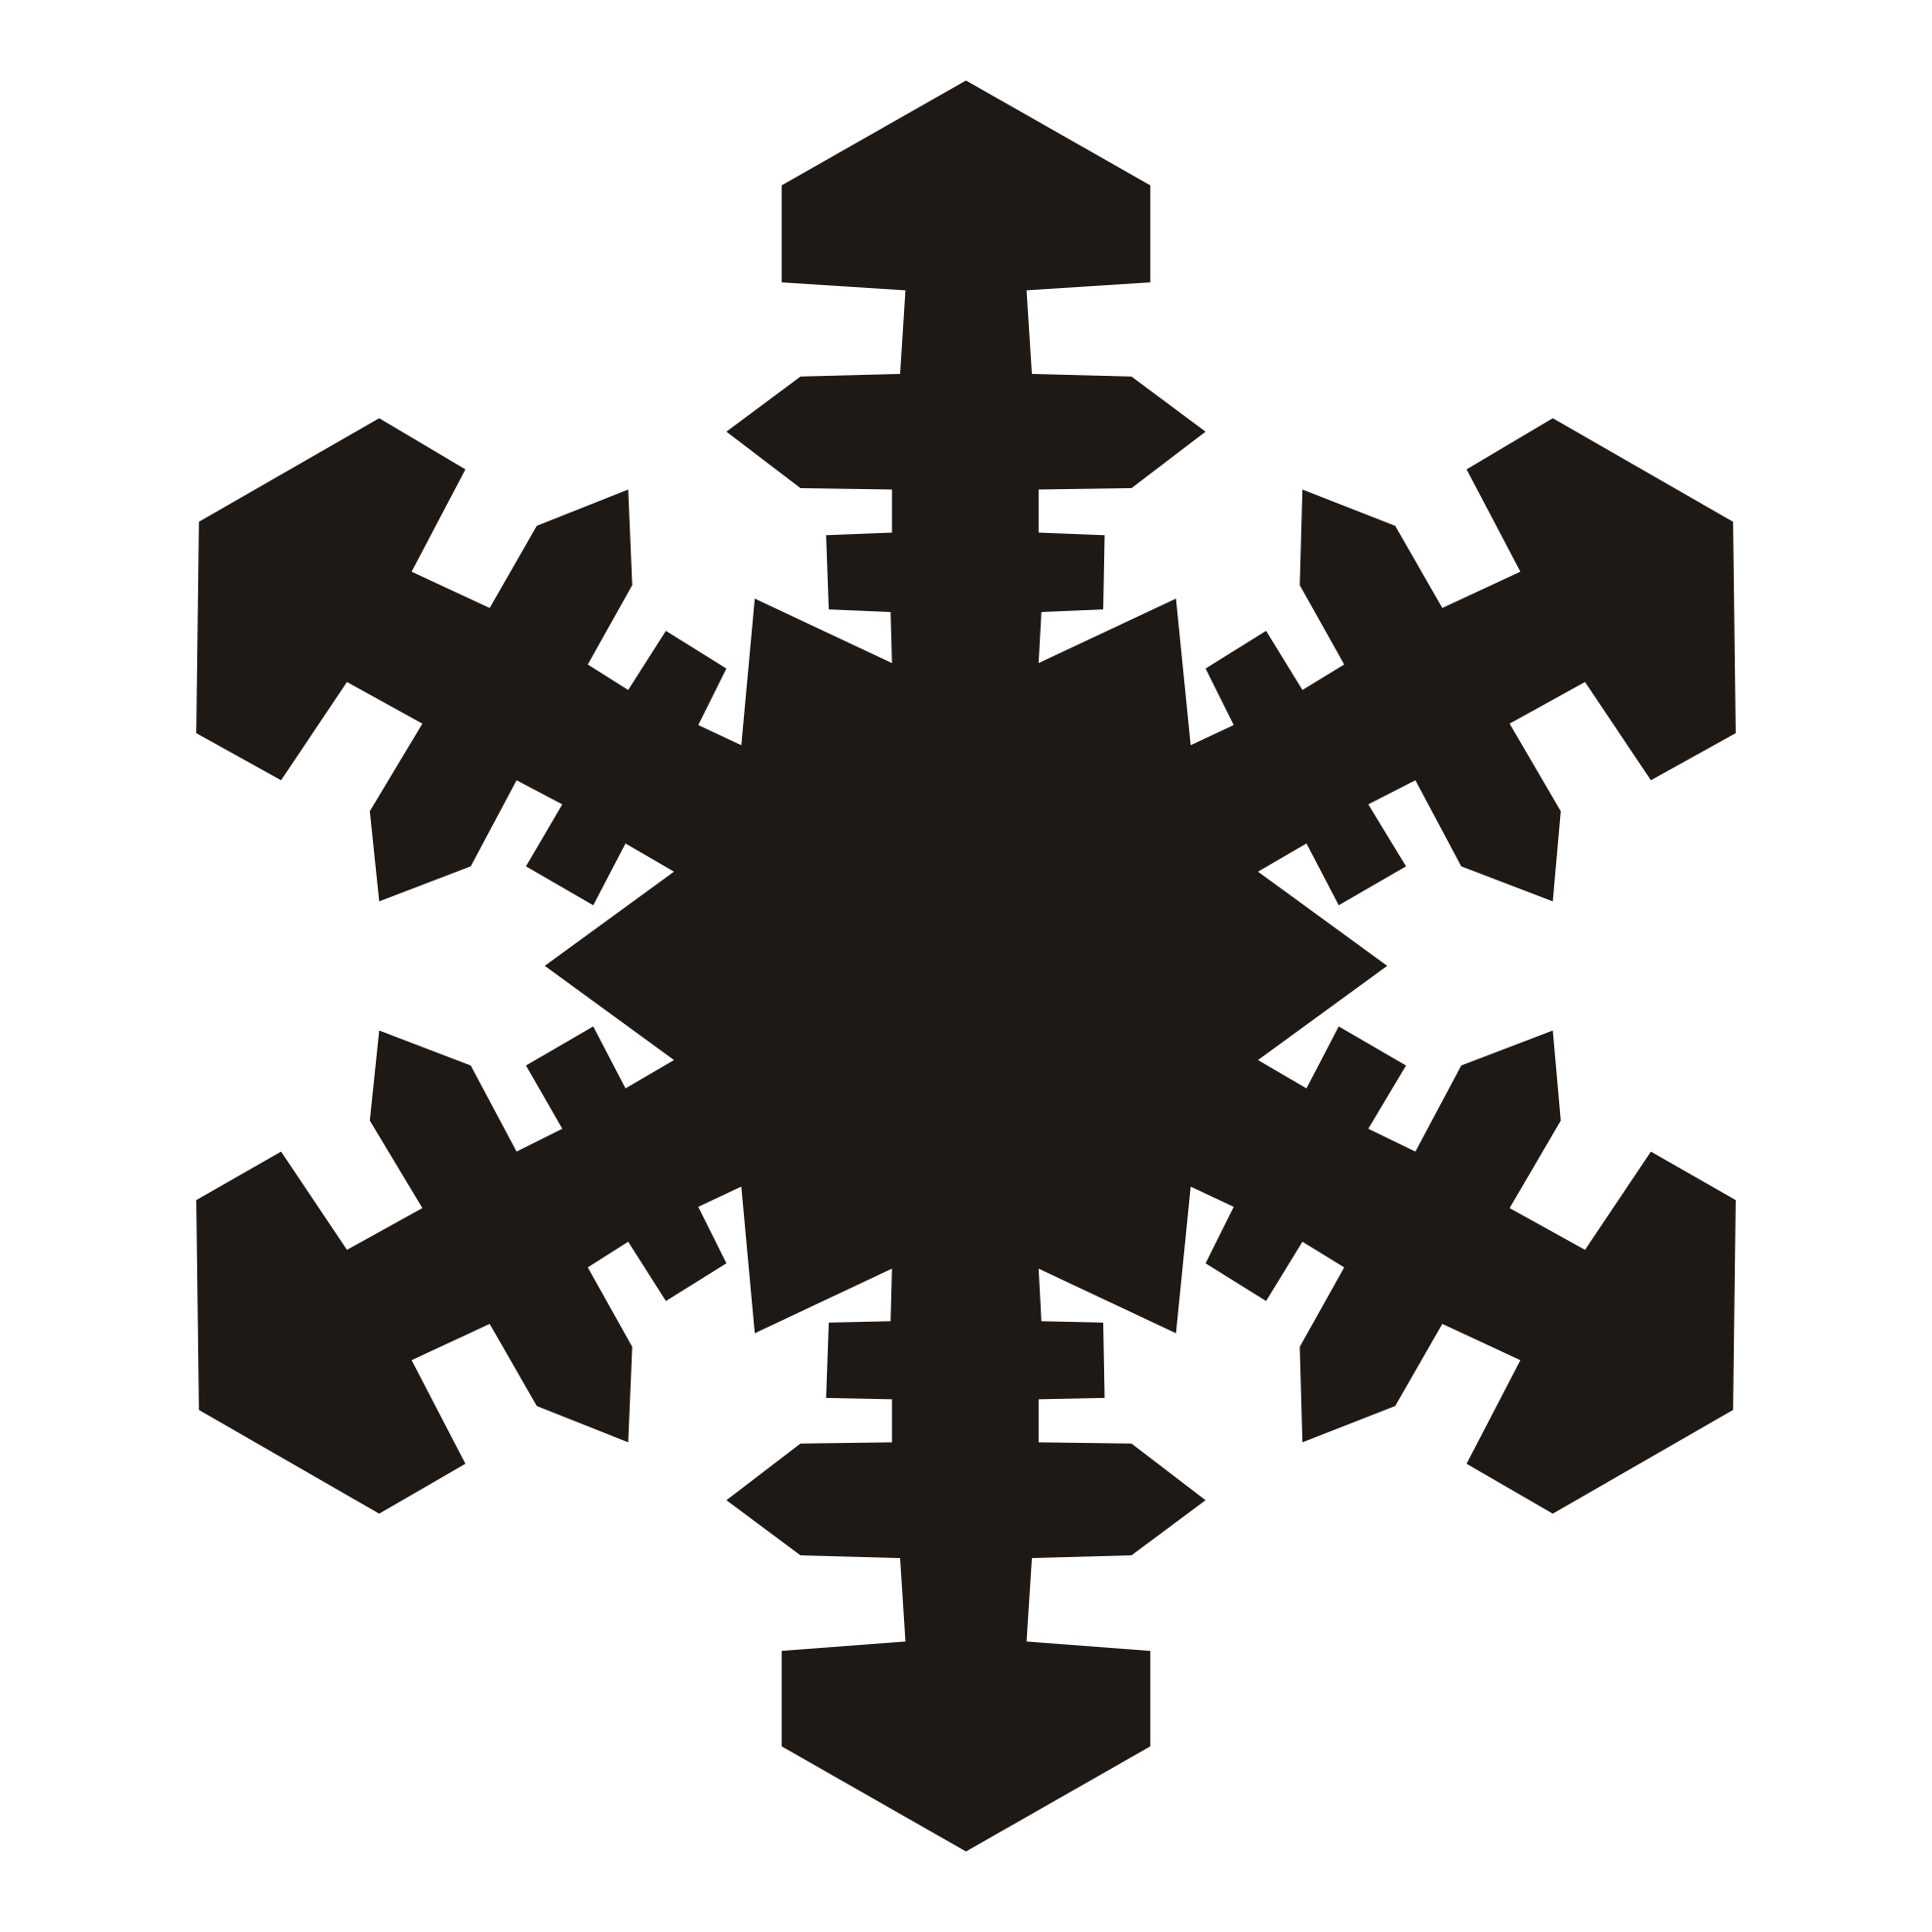 How to make snowflake clipart graphic freeuse download Snowflake Silhouette Cliparts Zone Within | o-val.me graphic freeuse download